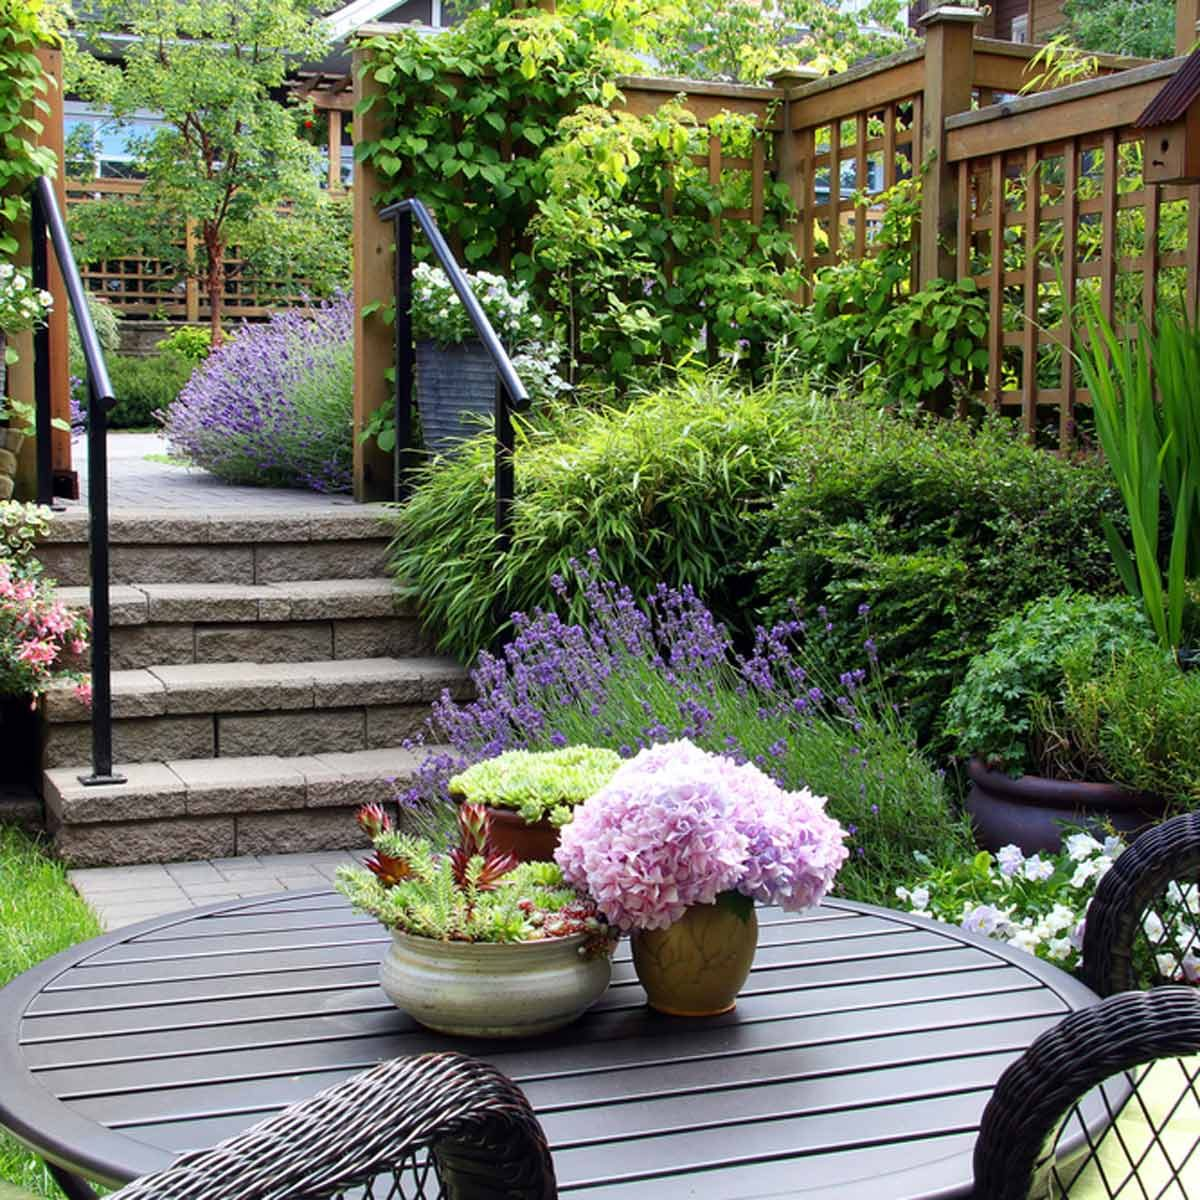 14 Small Yard Landscaping Ideas to Impress | Family Handyman on Landscape Garden Designs For Small Gardens id=63068